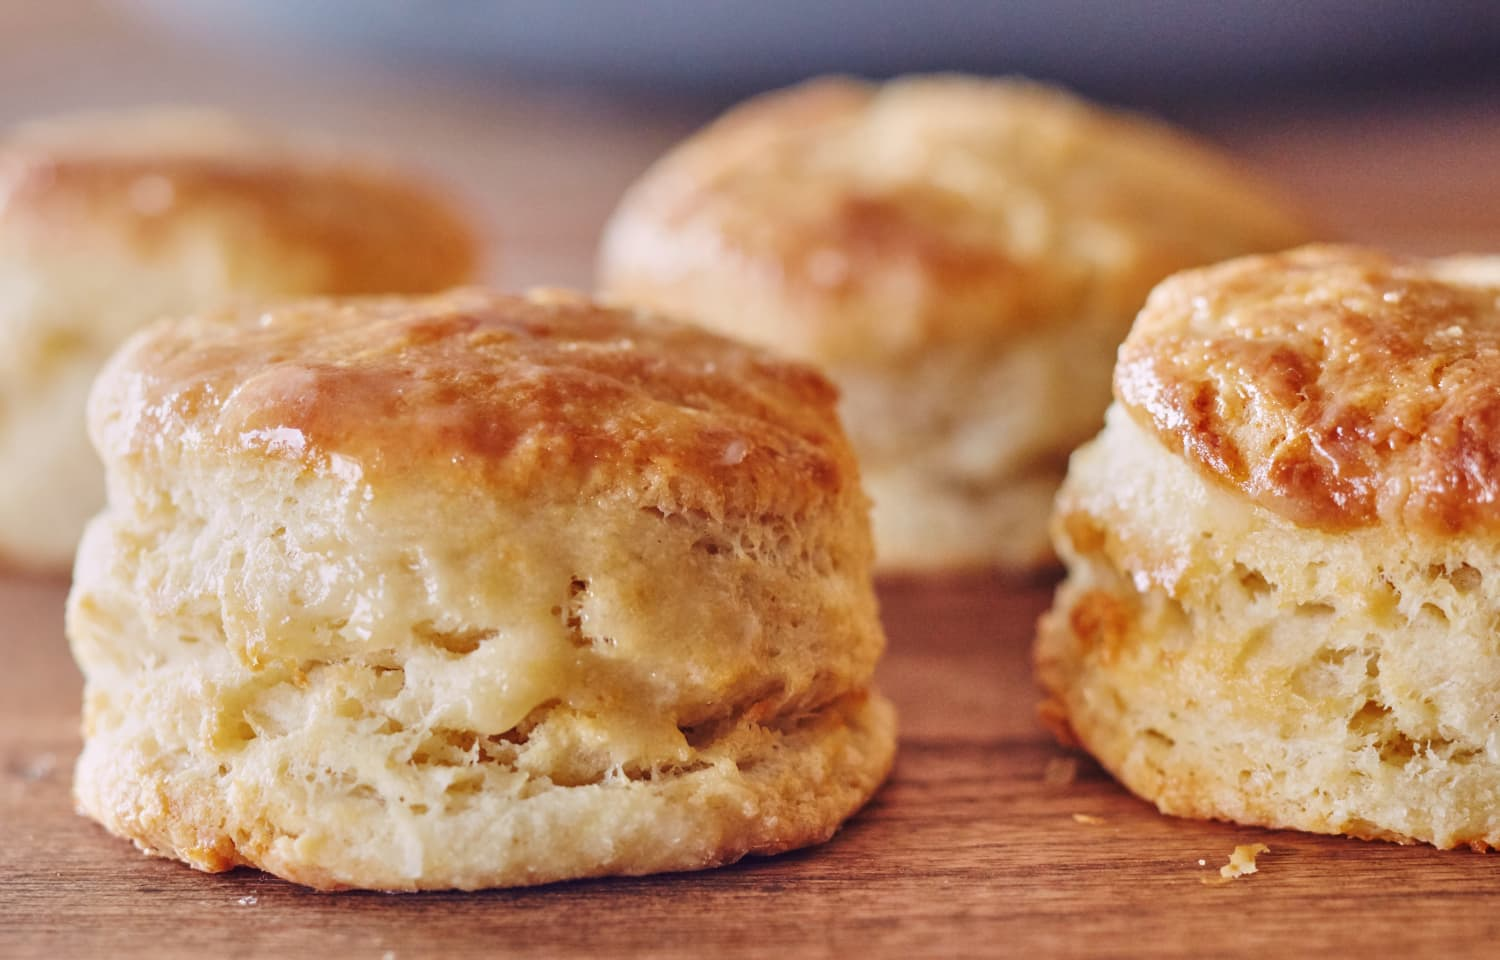 How To Make Southern Biscuits